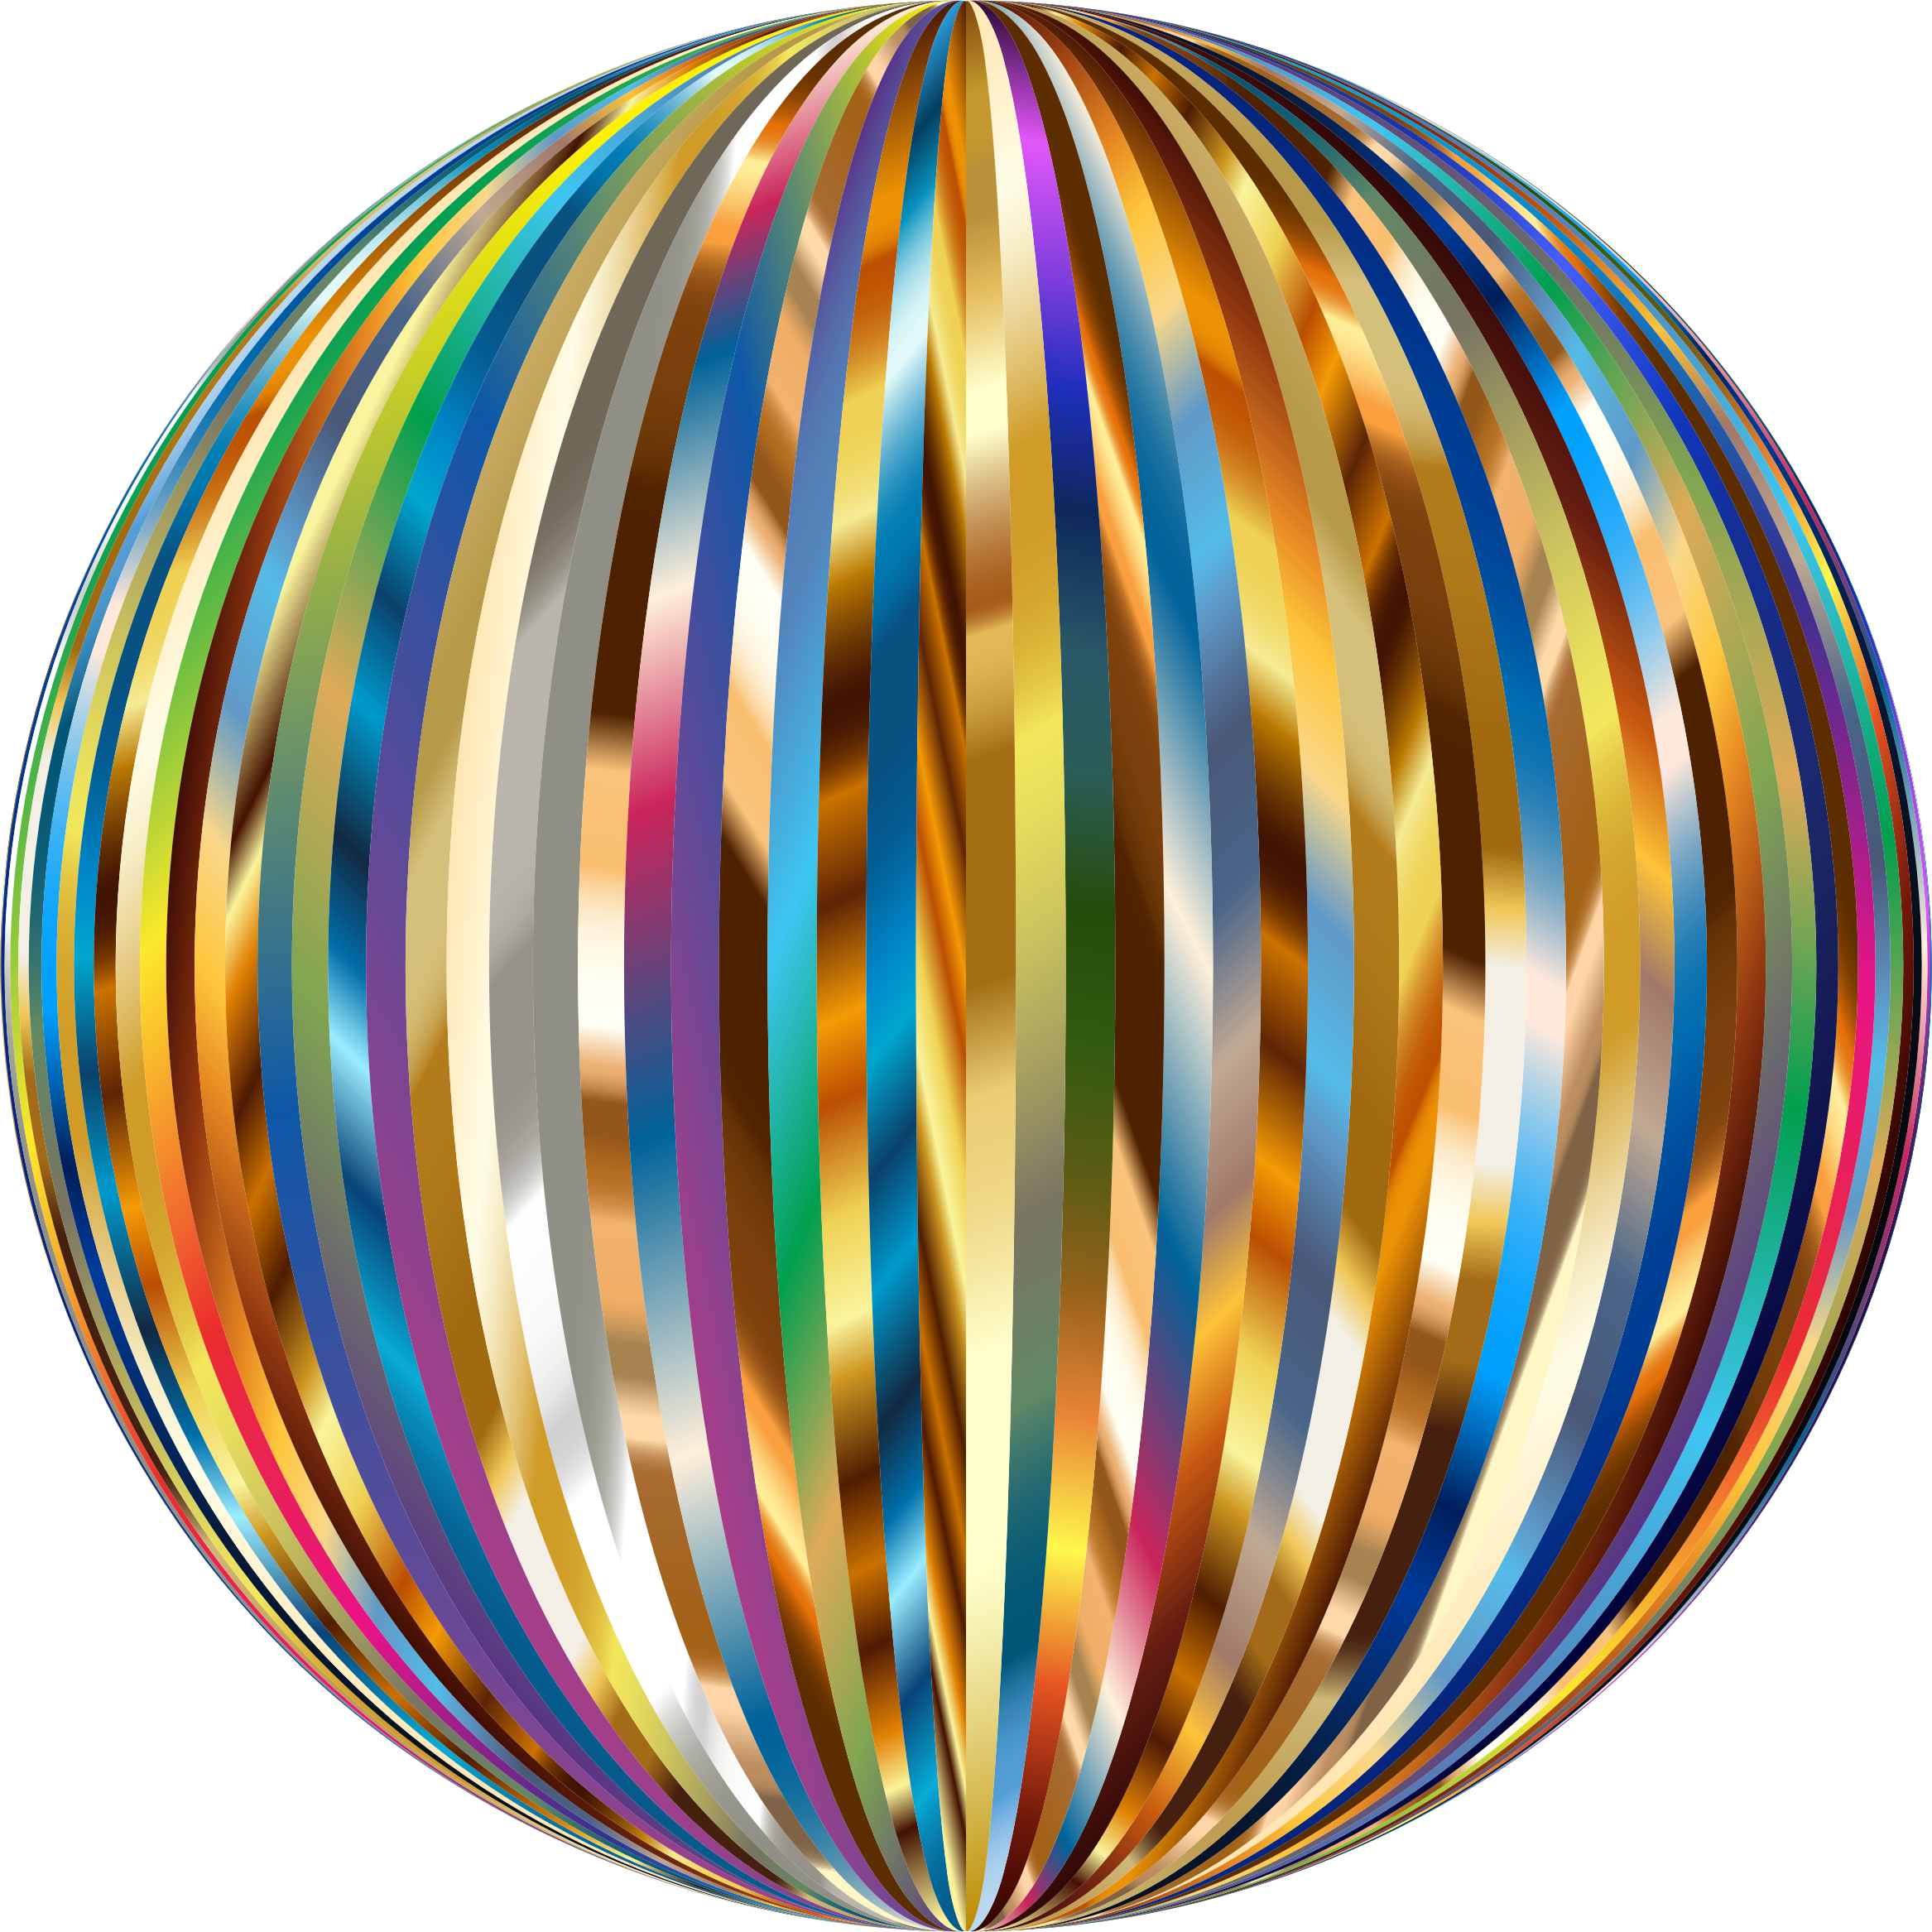 Vibrant Sphere 5 by GDJ